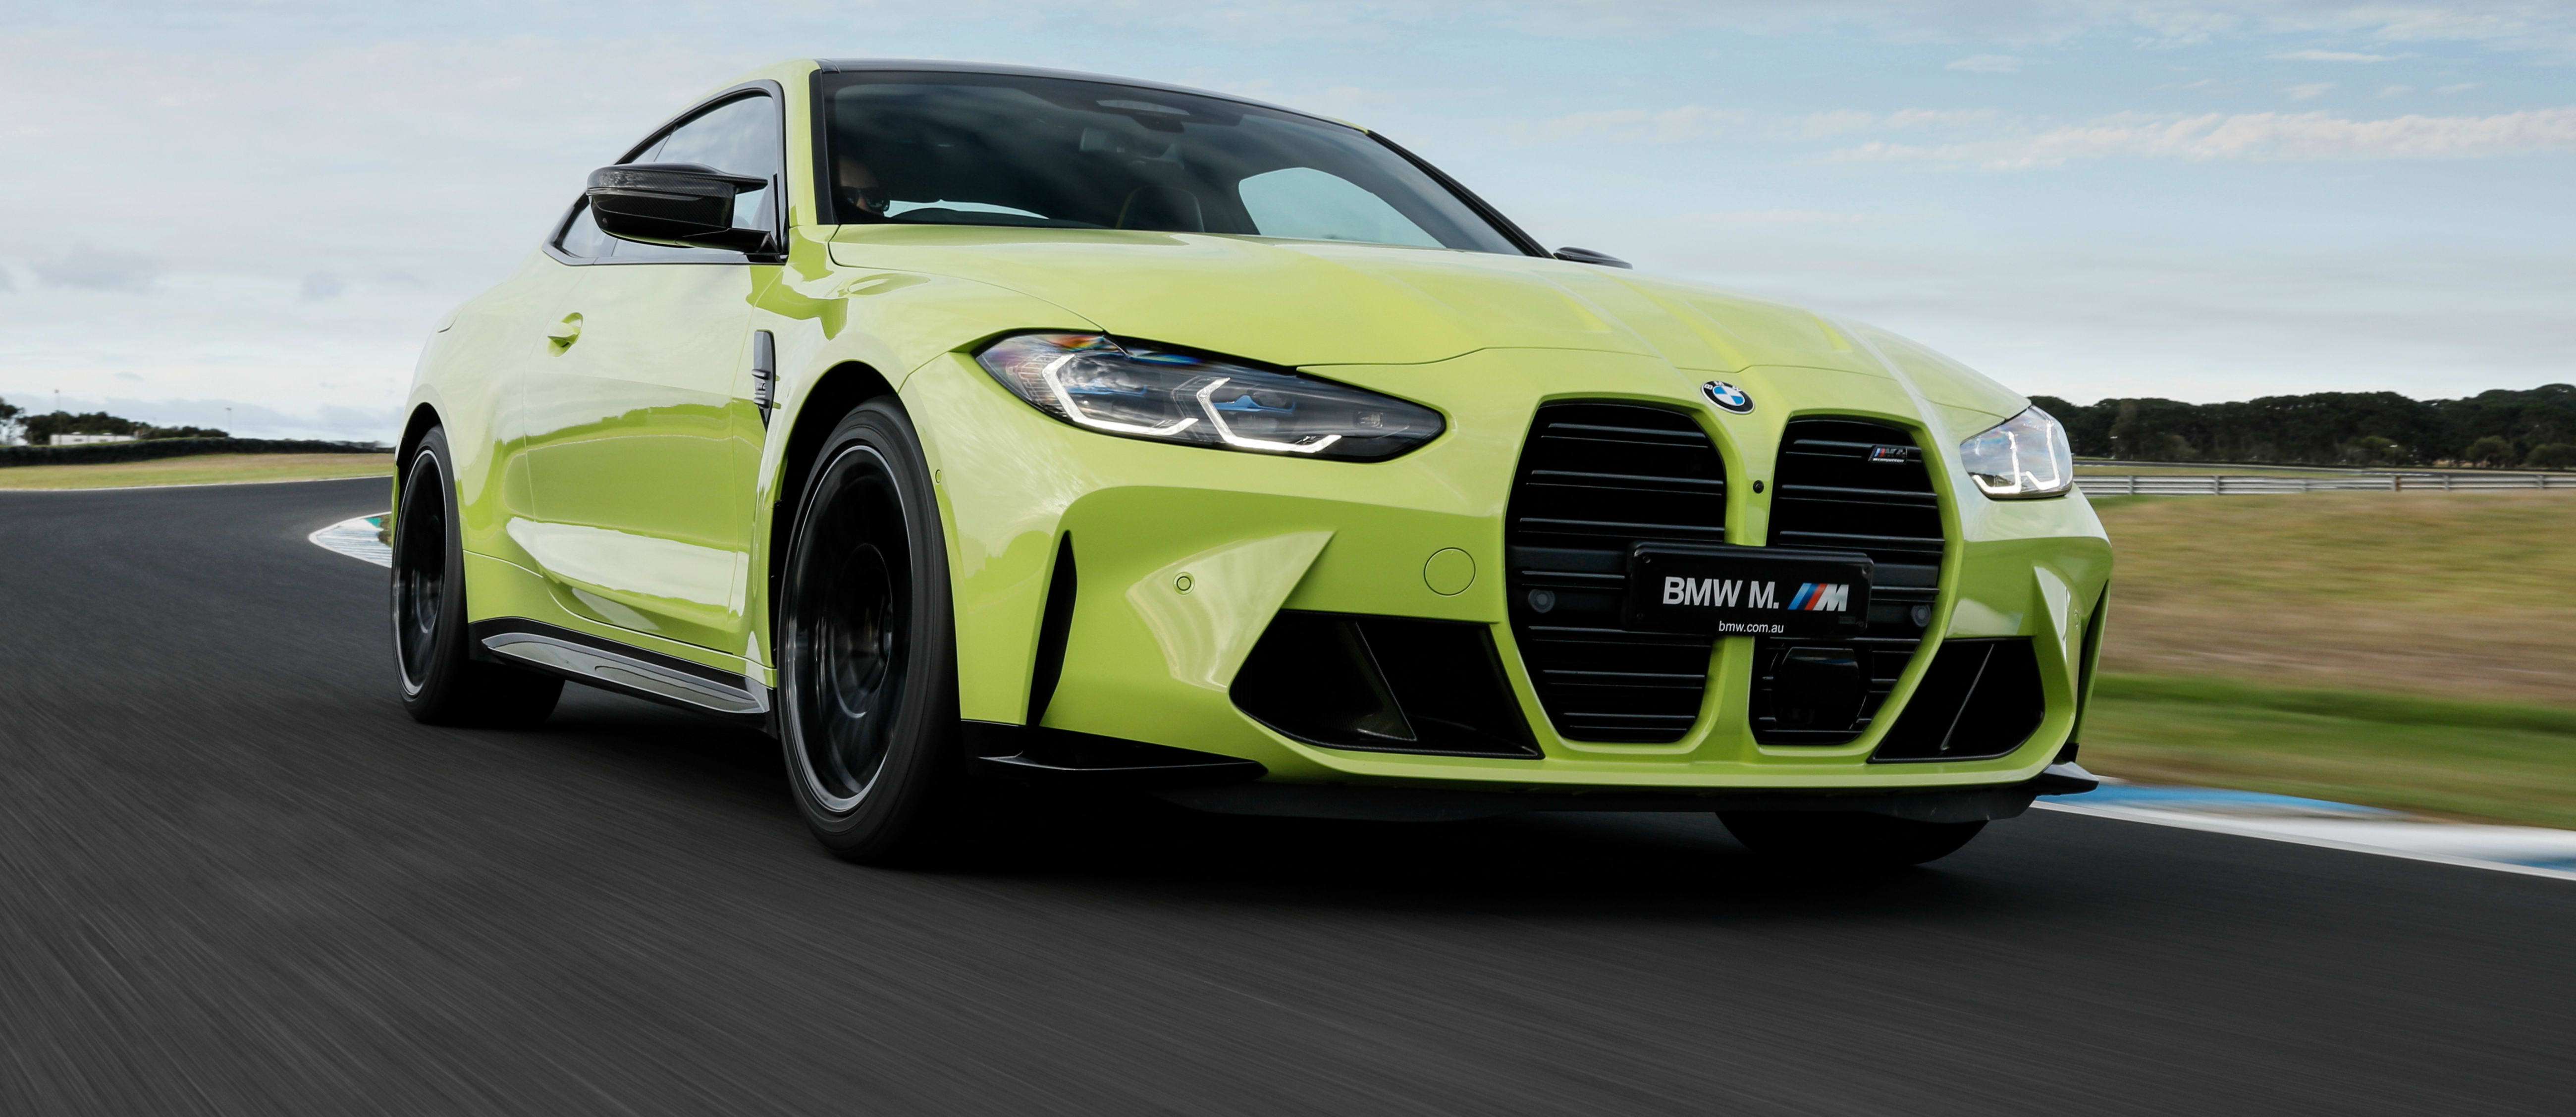 2021 BMW M4 Competition review